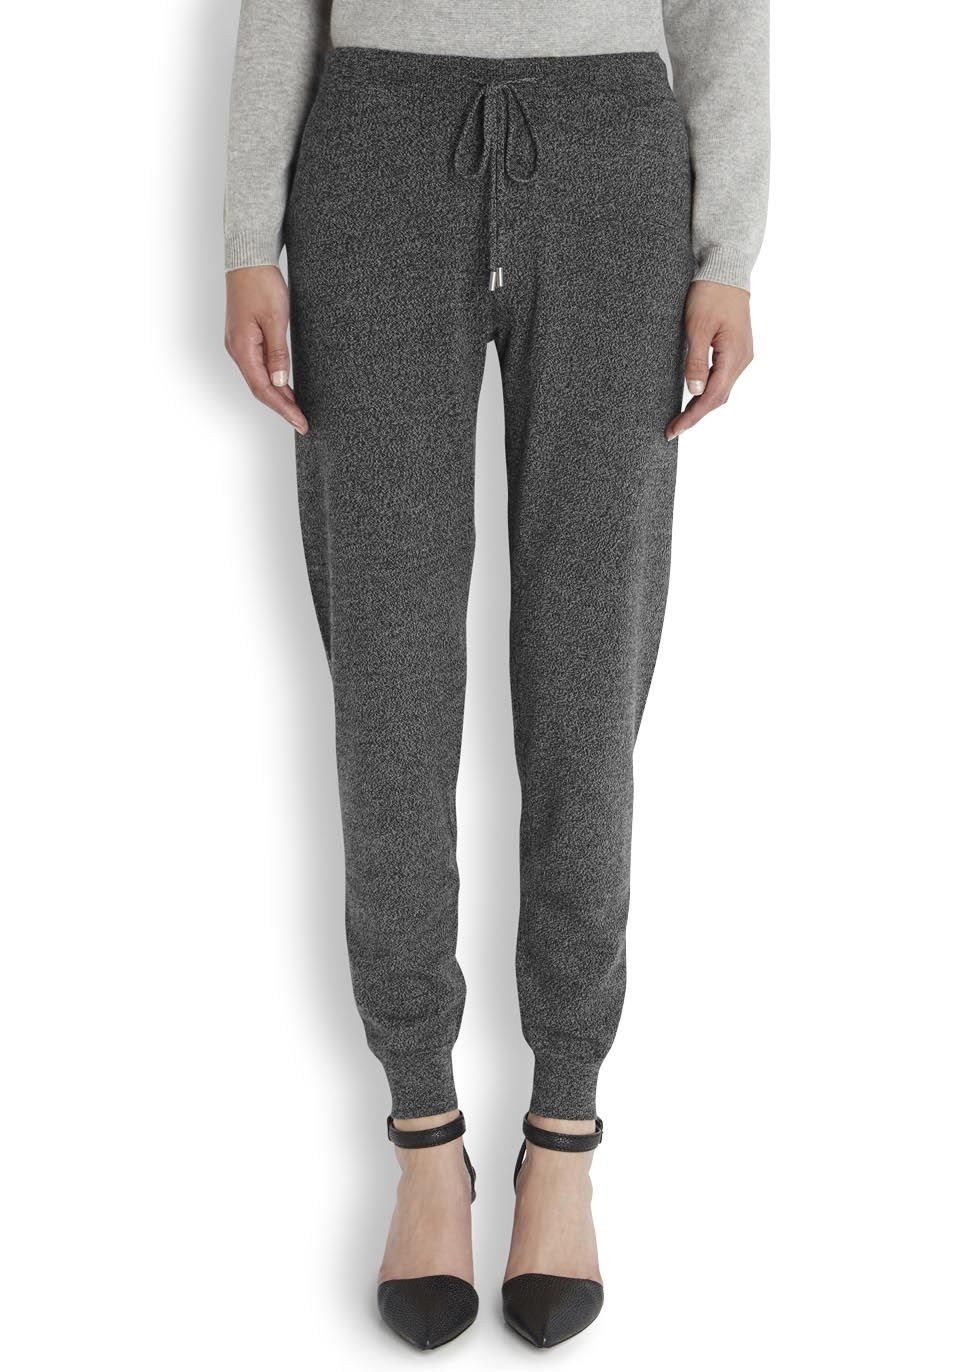 diversified latest designs great prices reasonable price Joie Dark Grey Merino Wool Jogging Trousers in Gray - Lyst